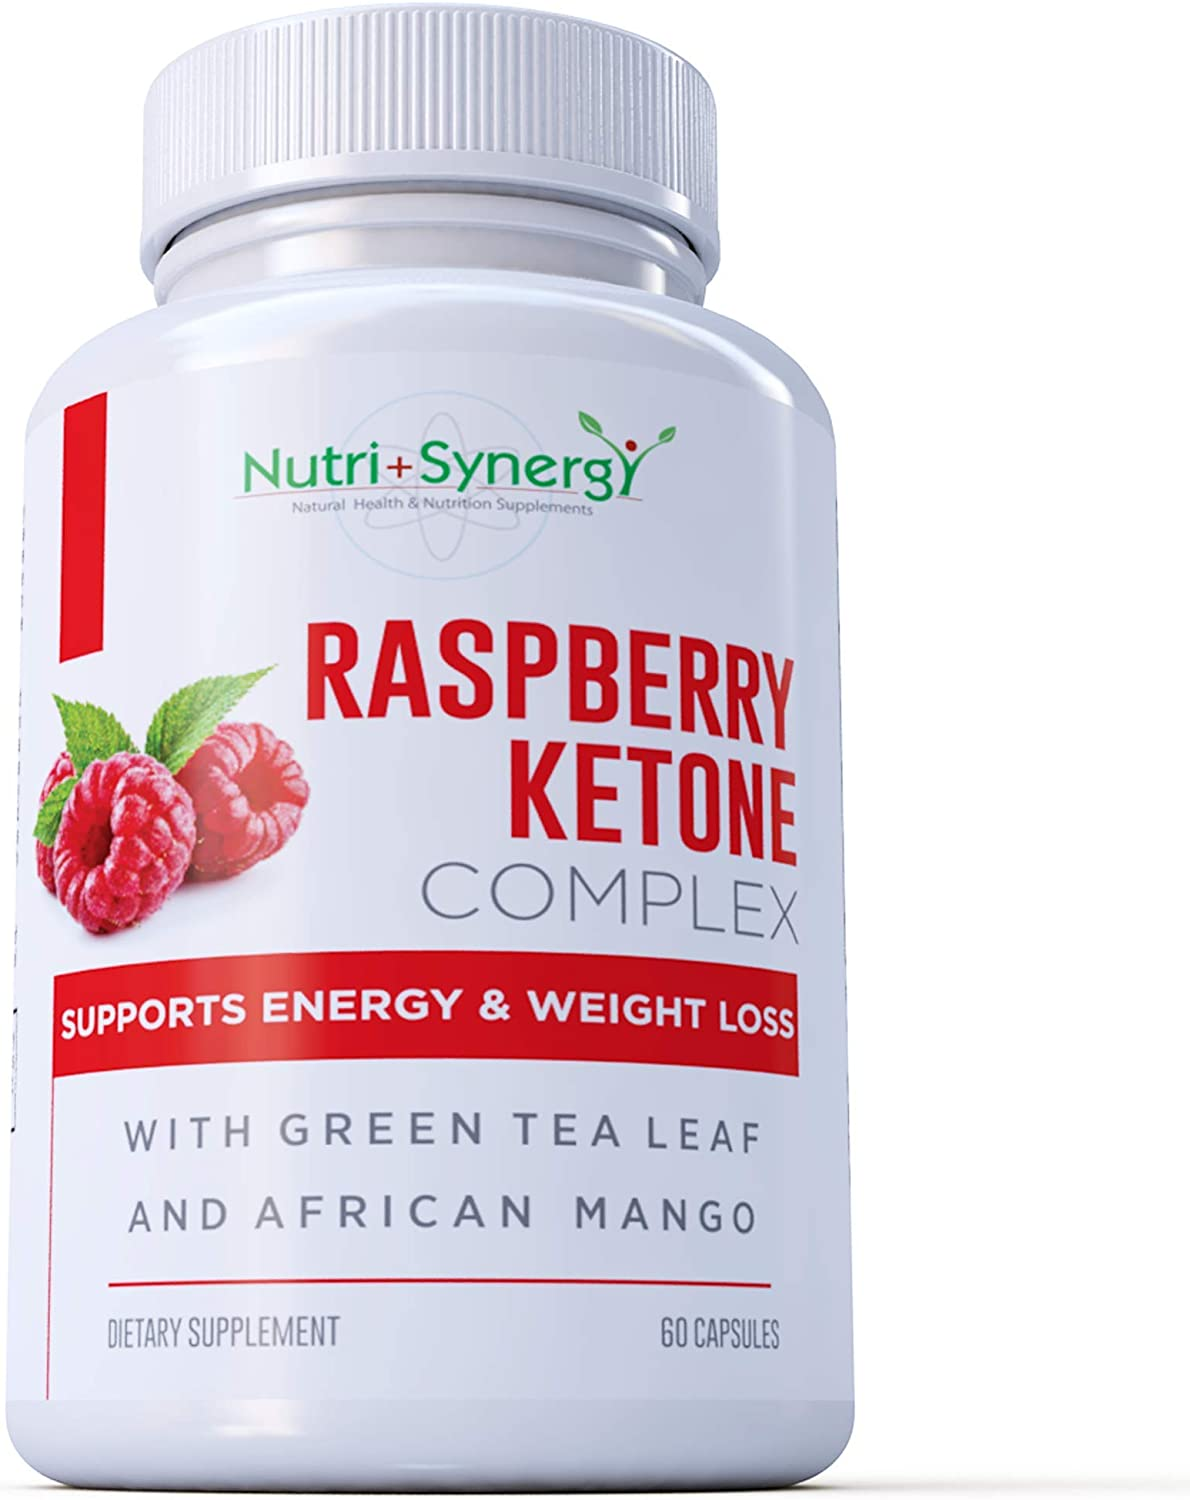 Raspberry Fashion 2021 autumn and winter new Ketone Complex with Green Tea M Black Leaf African and